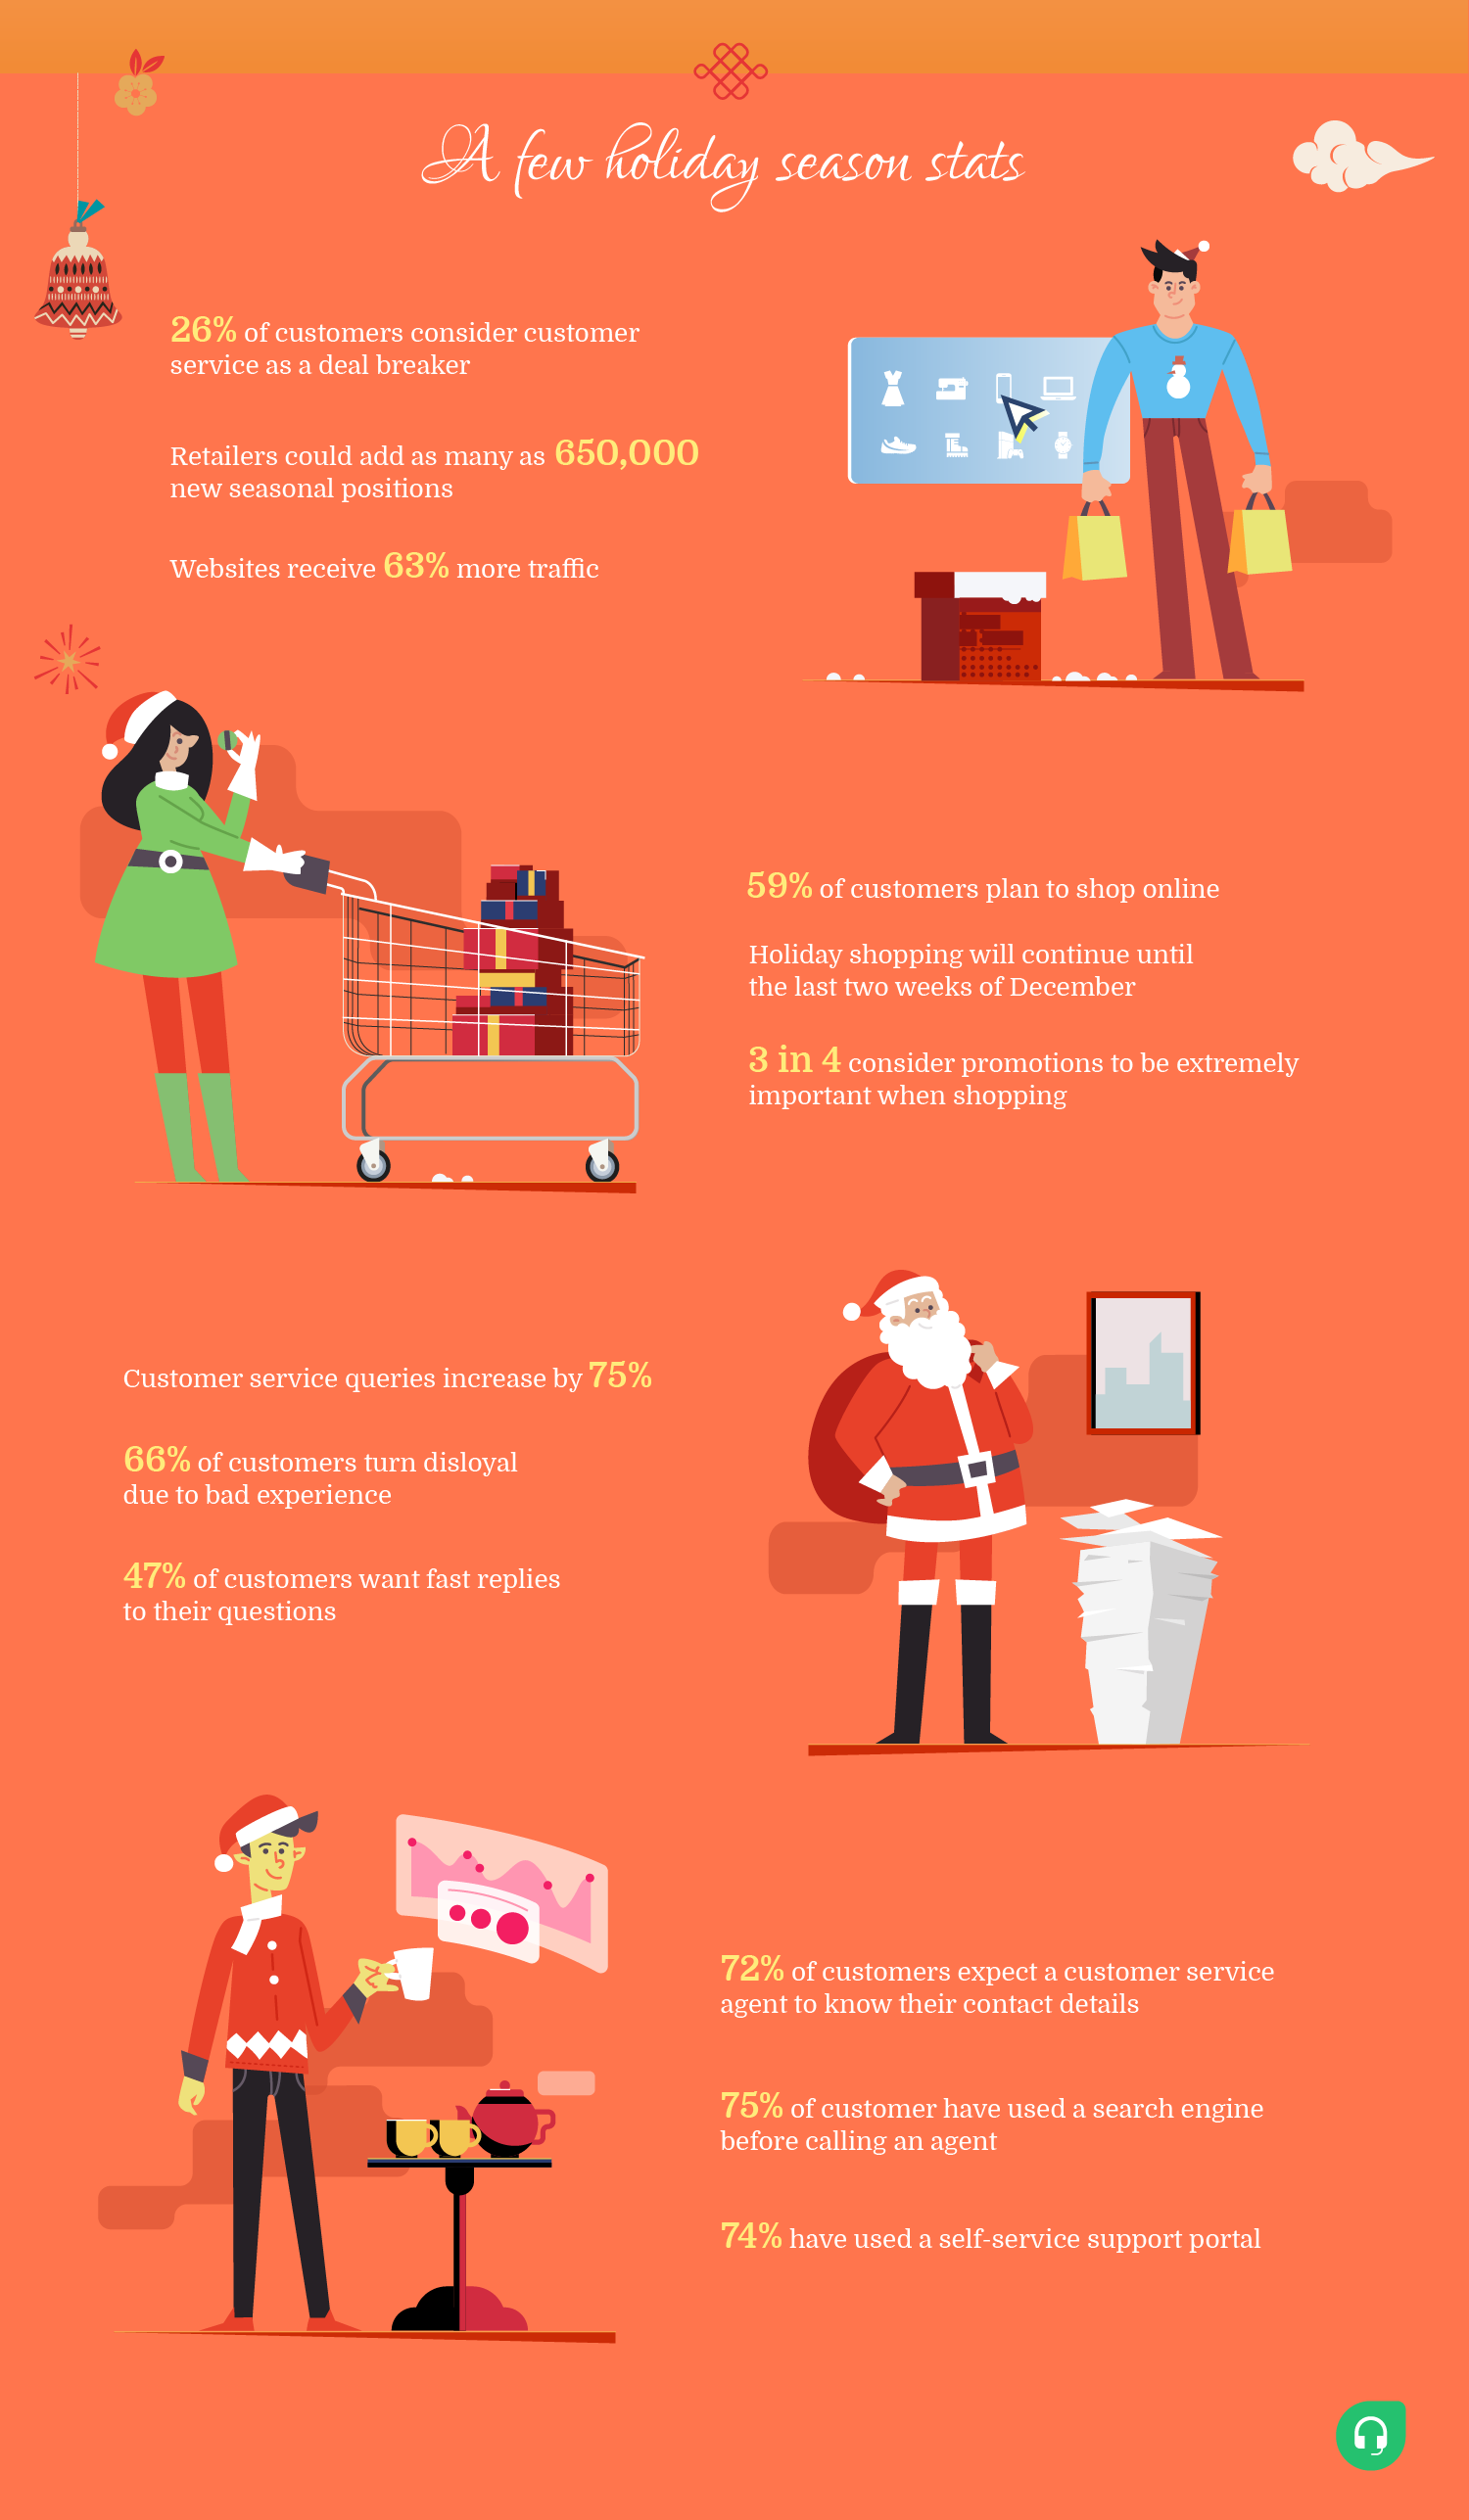 statistics of customer service during holidays